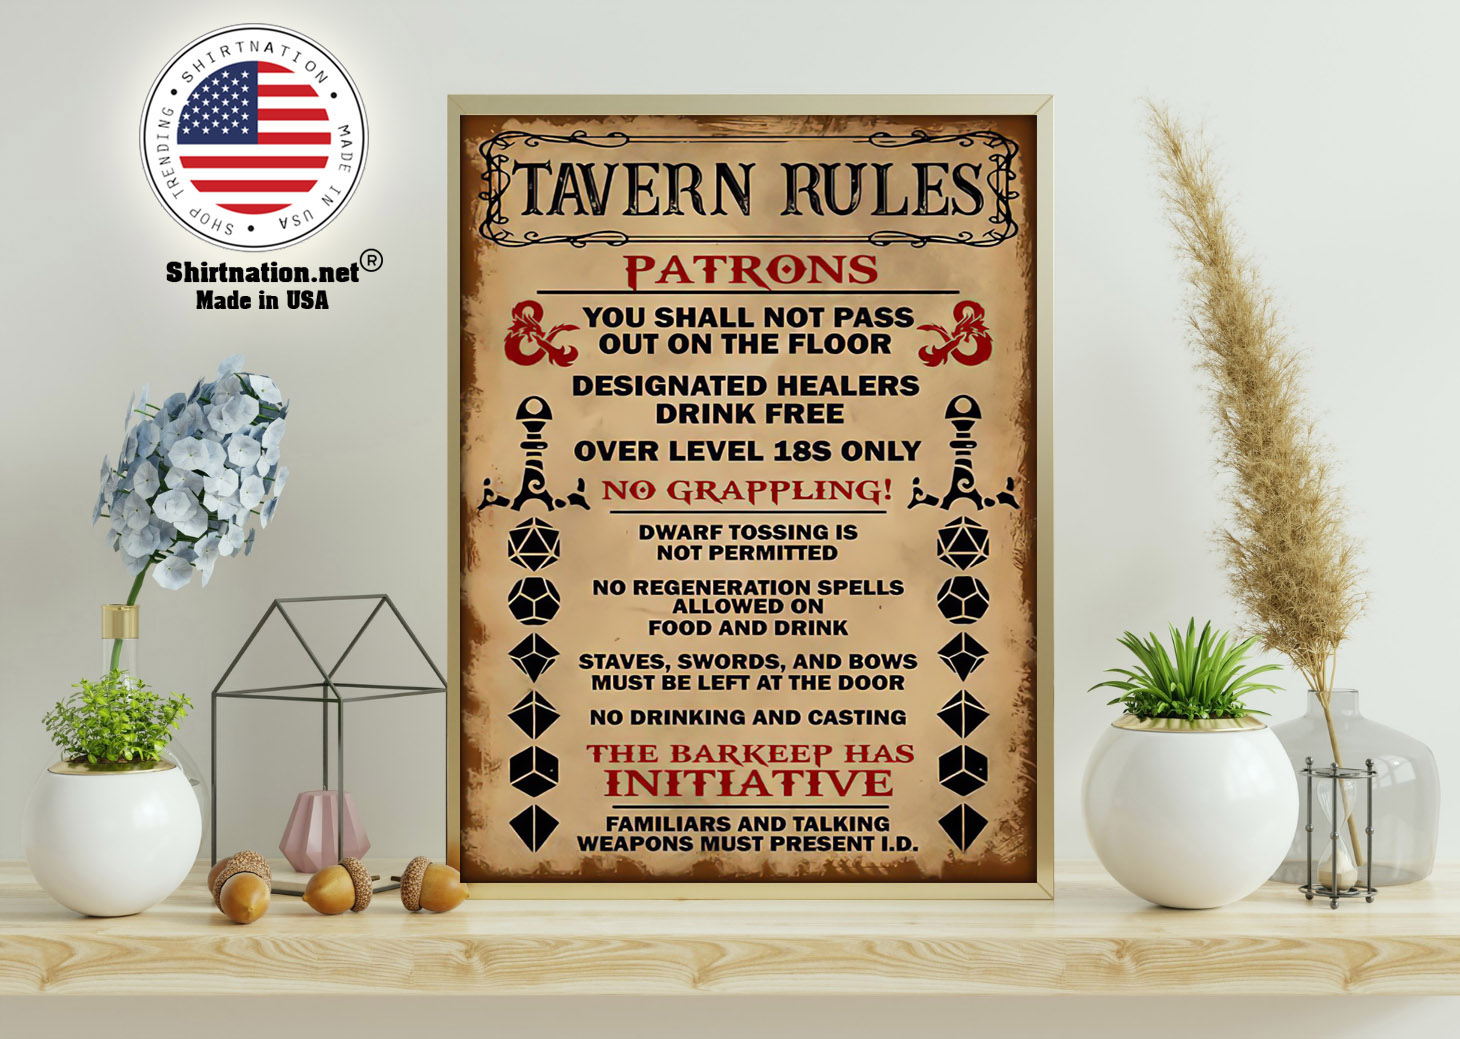 Tavern rules patrons you shall not pass out on the floor poster 11